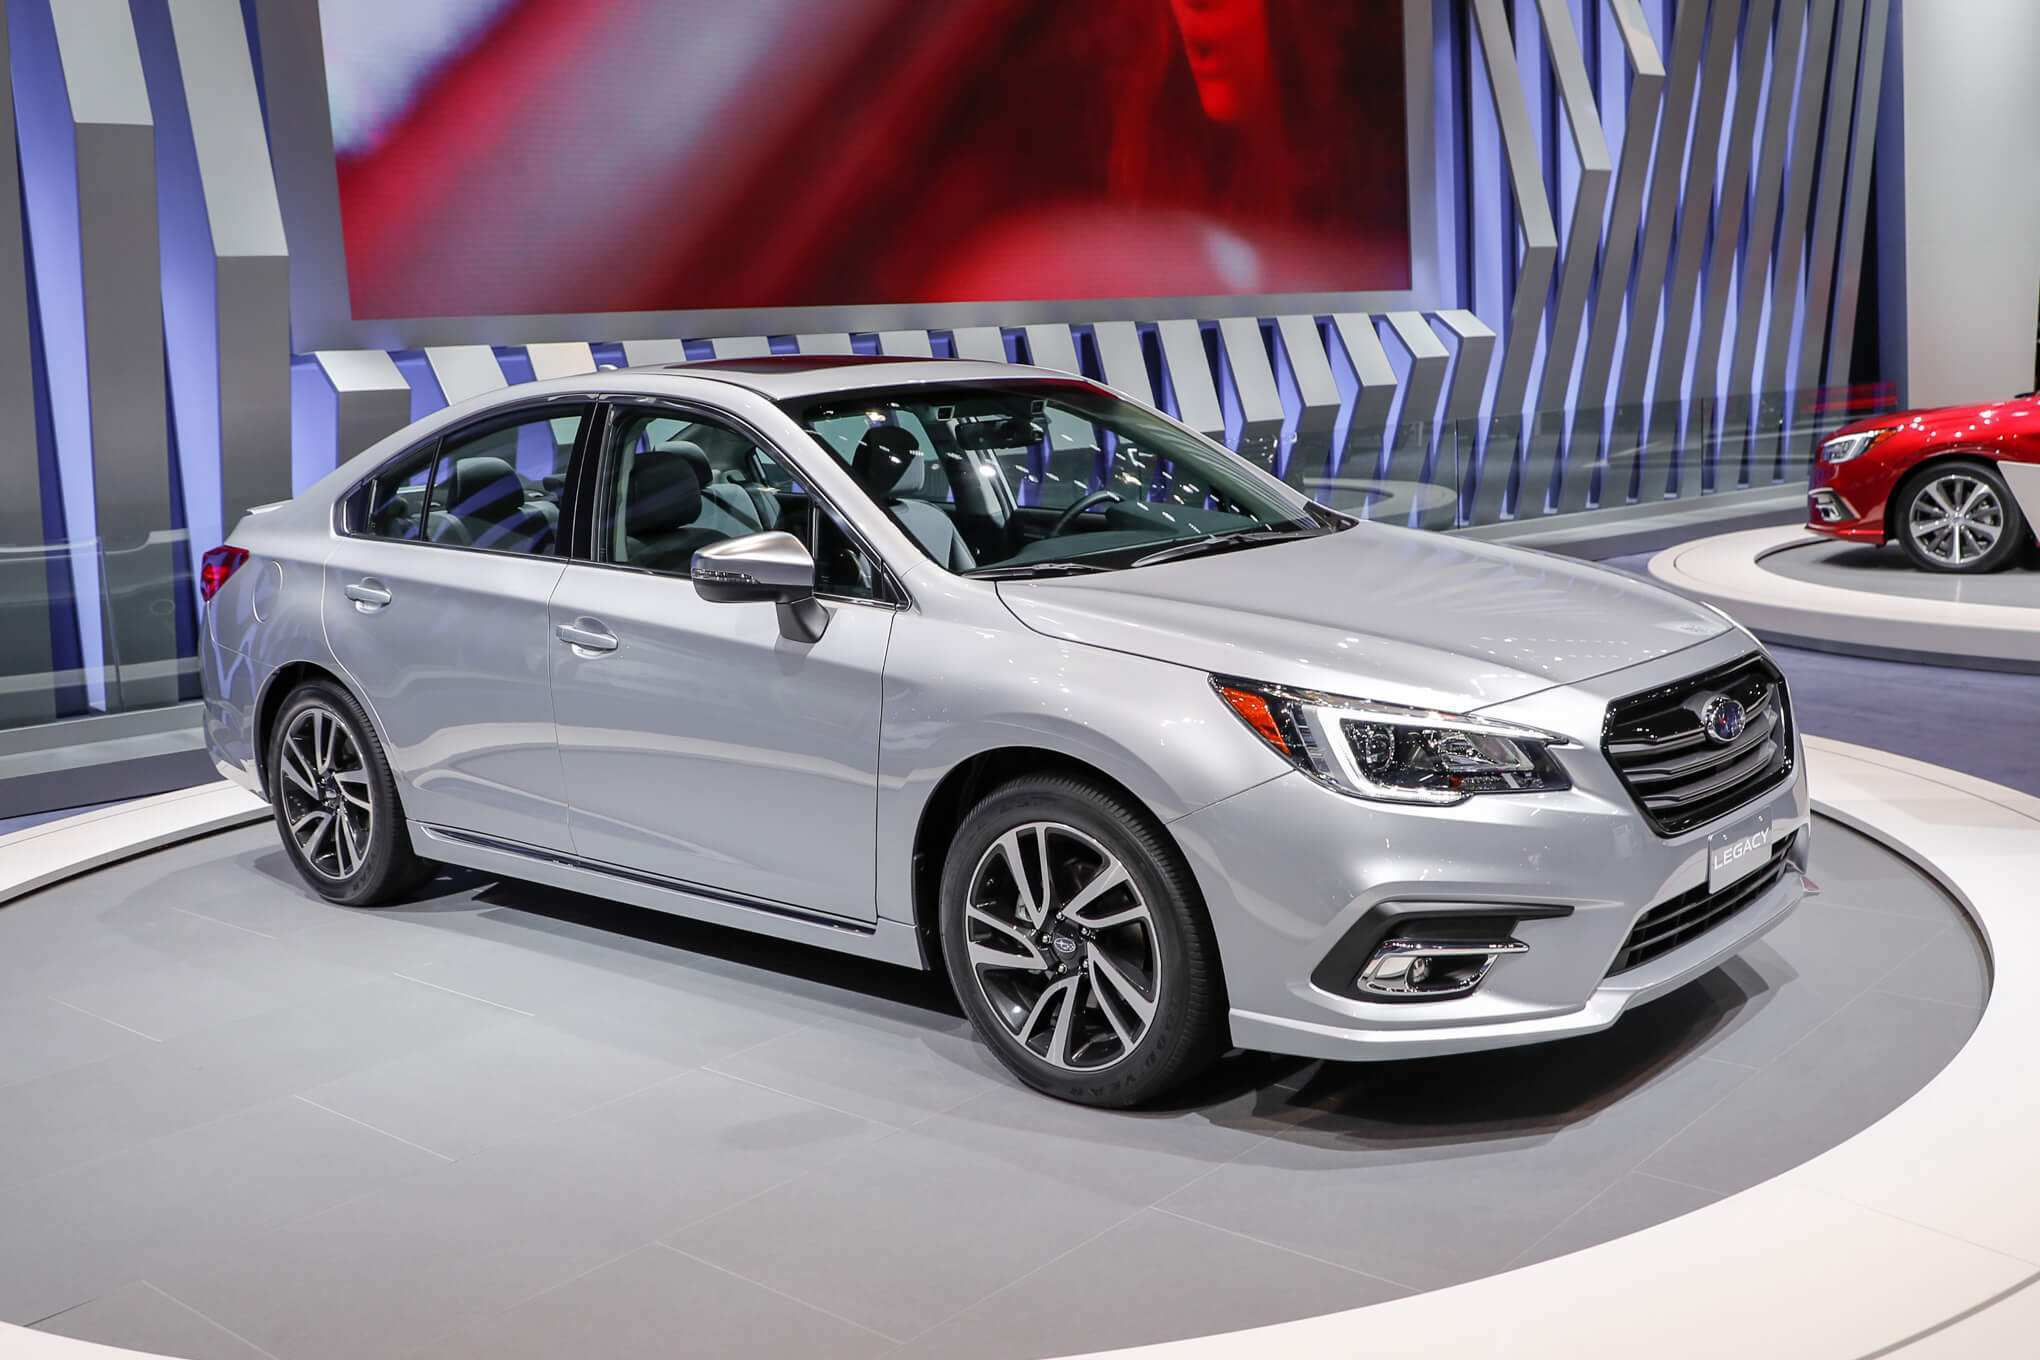 83 Best Review 2020 Subaru Legacy Redesign Specs and Review with 2020 Subaru Legacy Redesign